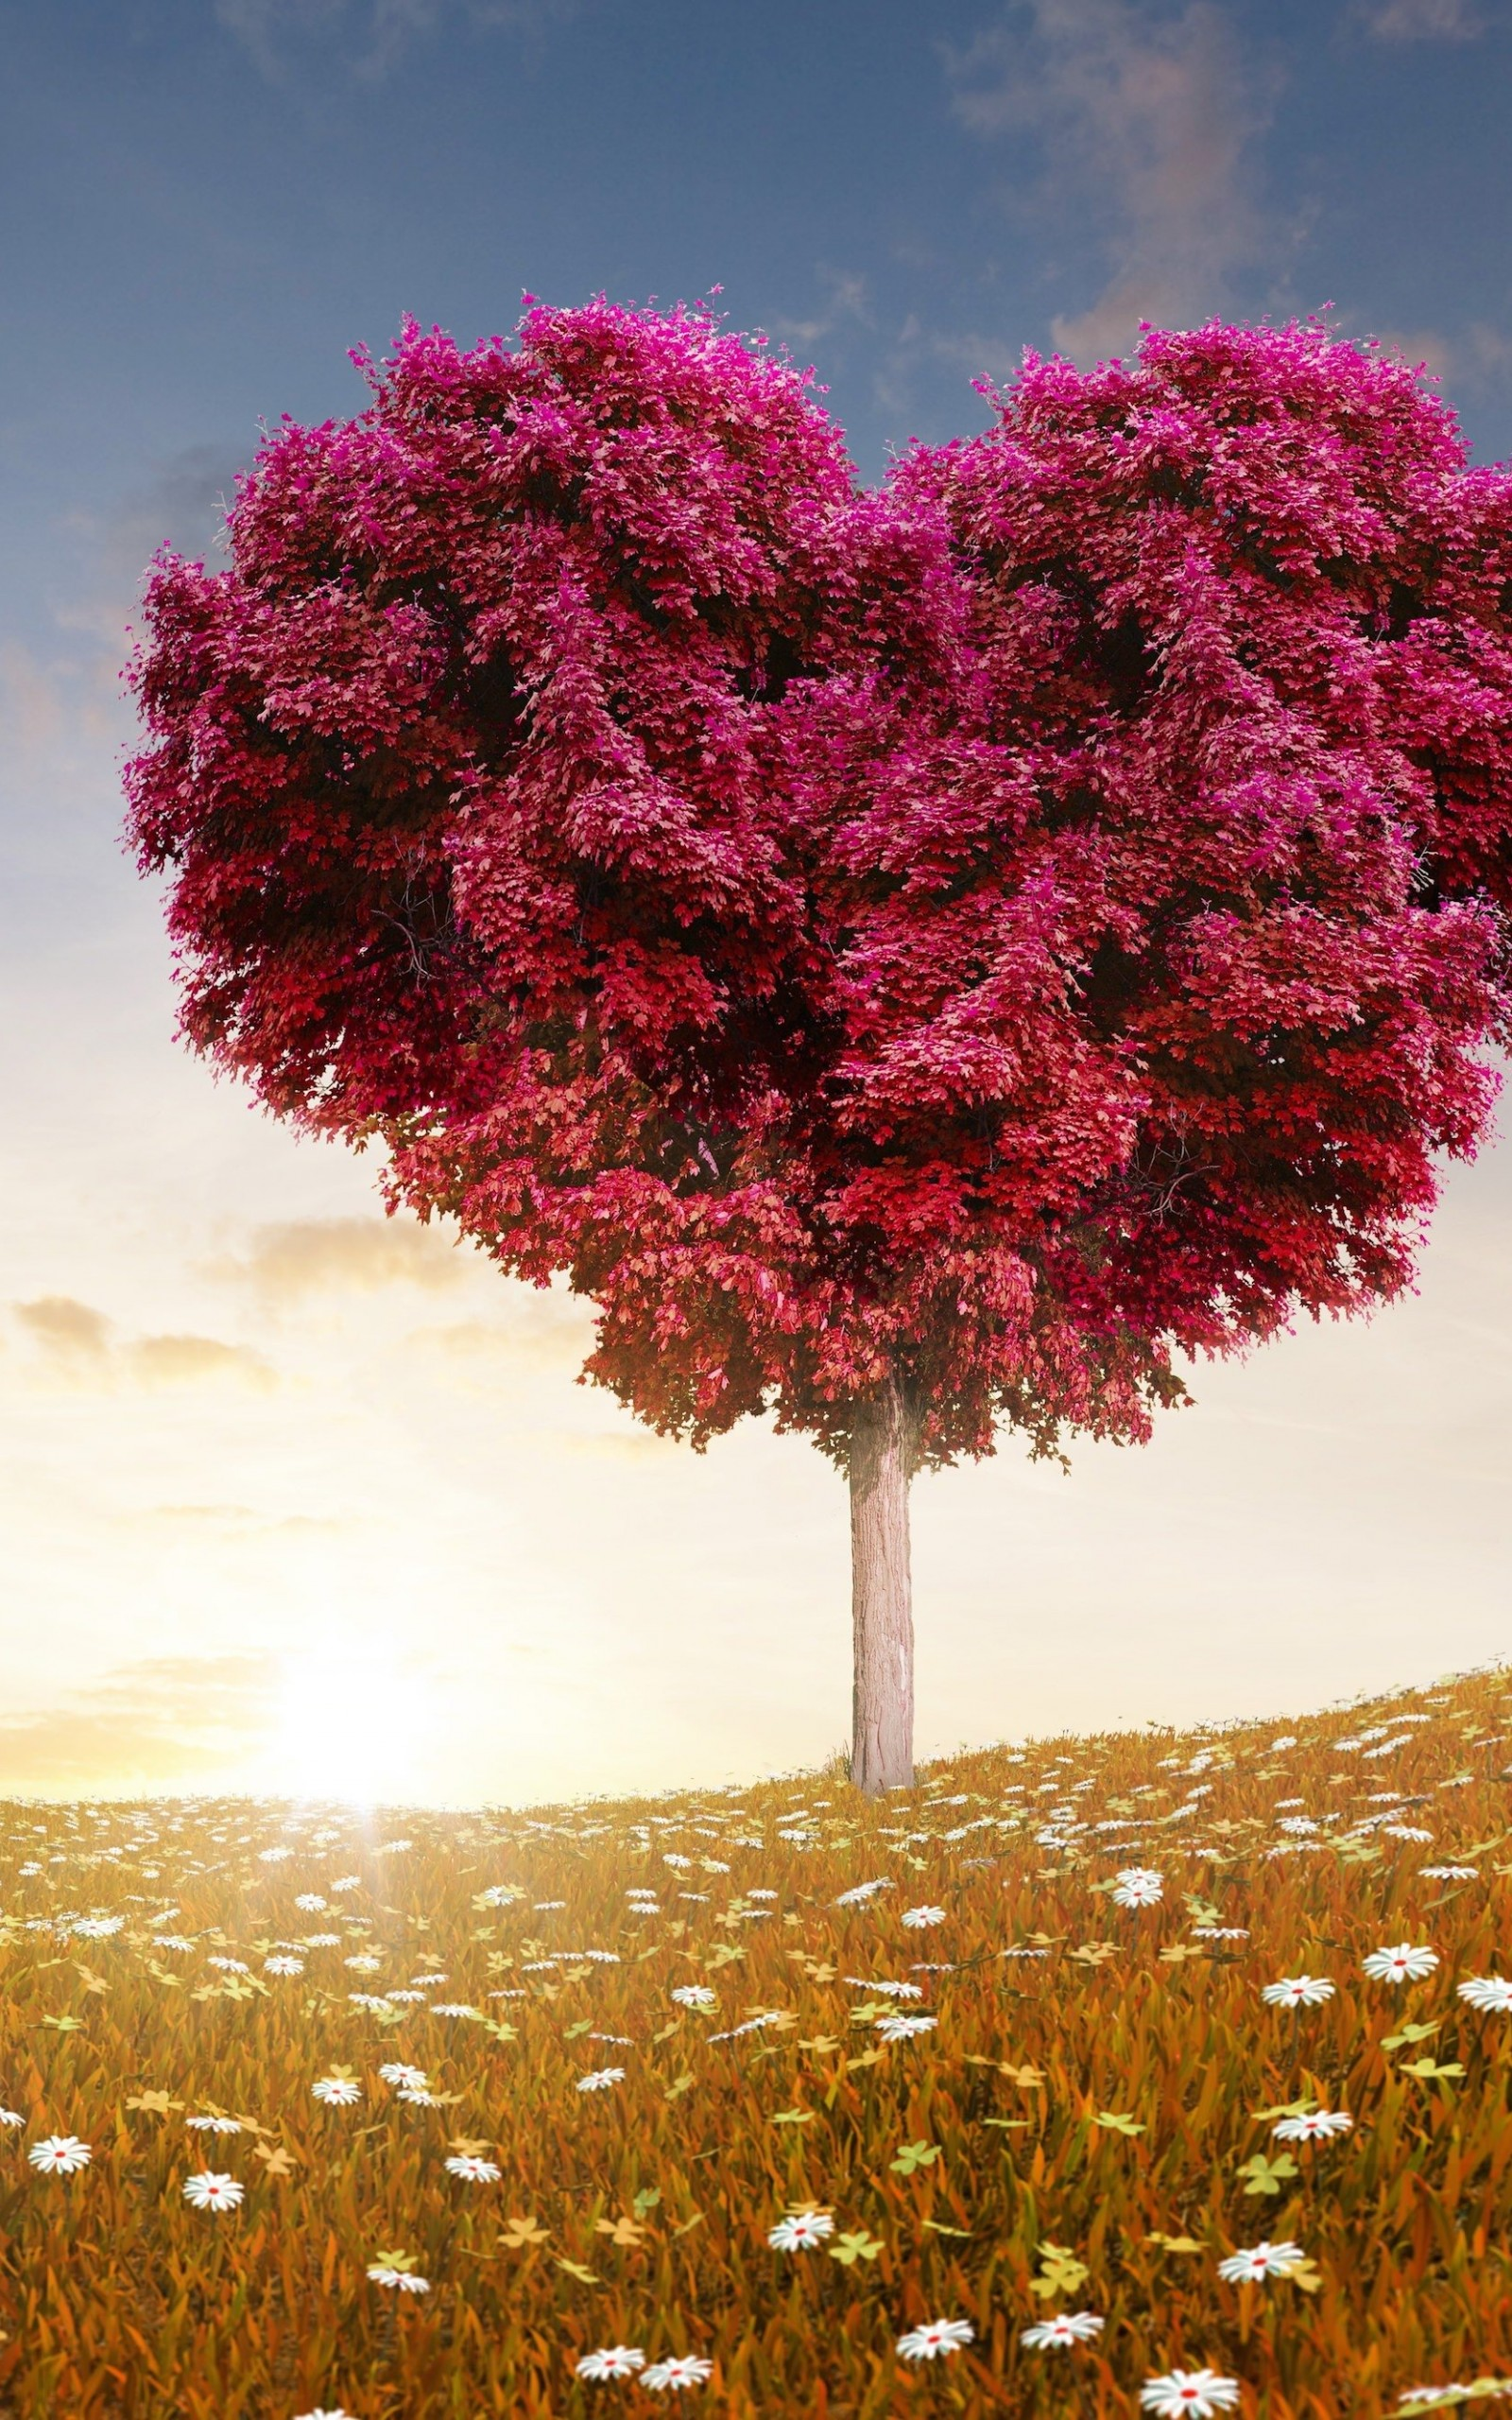 Tree Of Love Wallpaper for Amazon Kindle Fire HDX 8.9